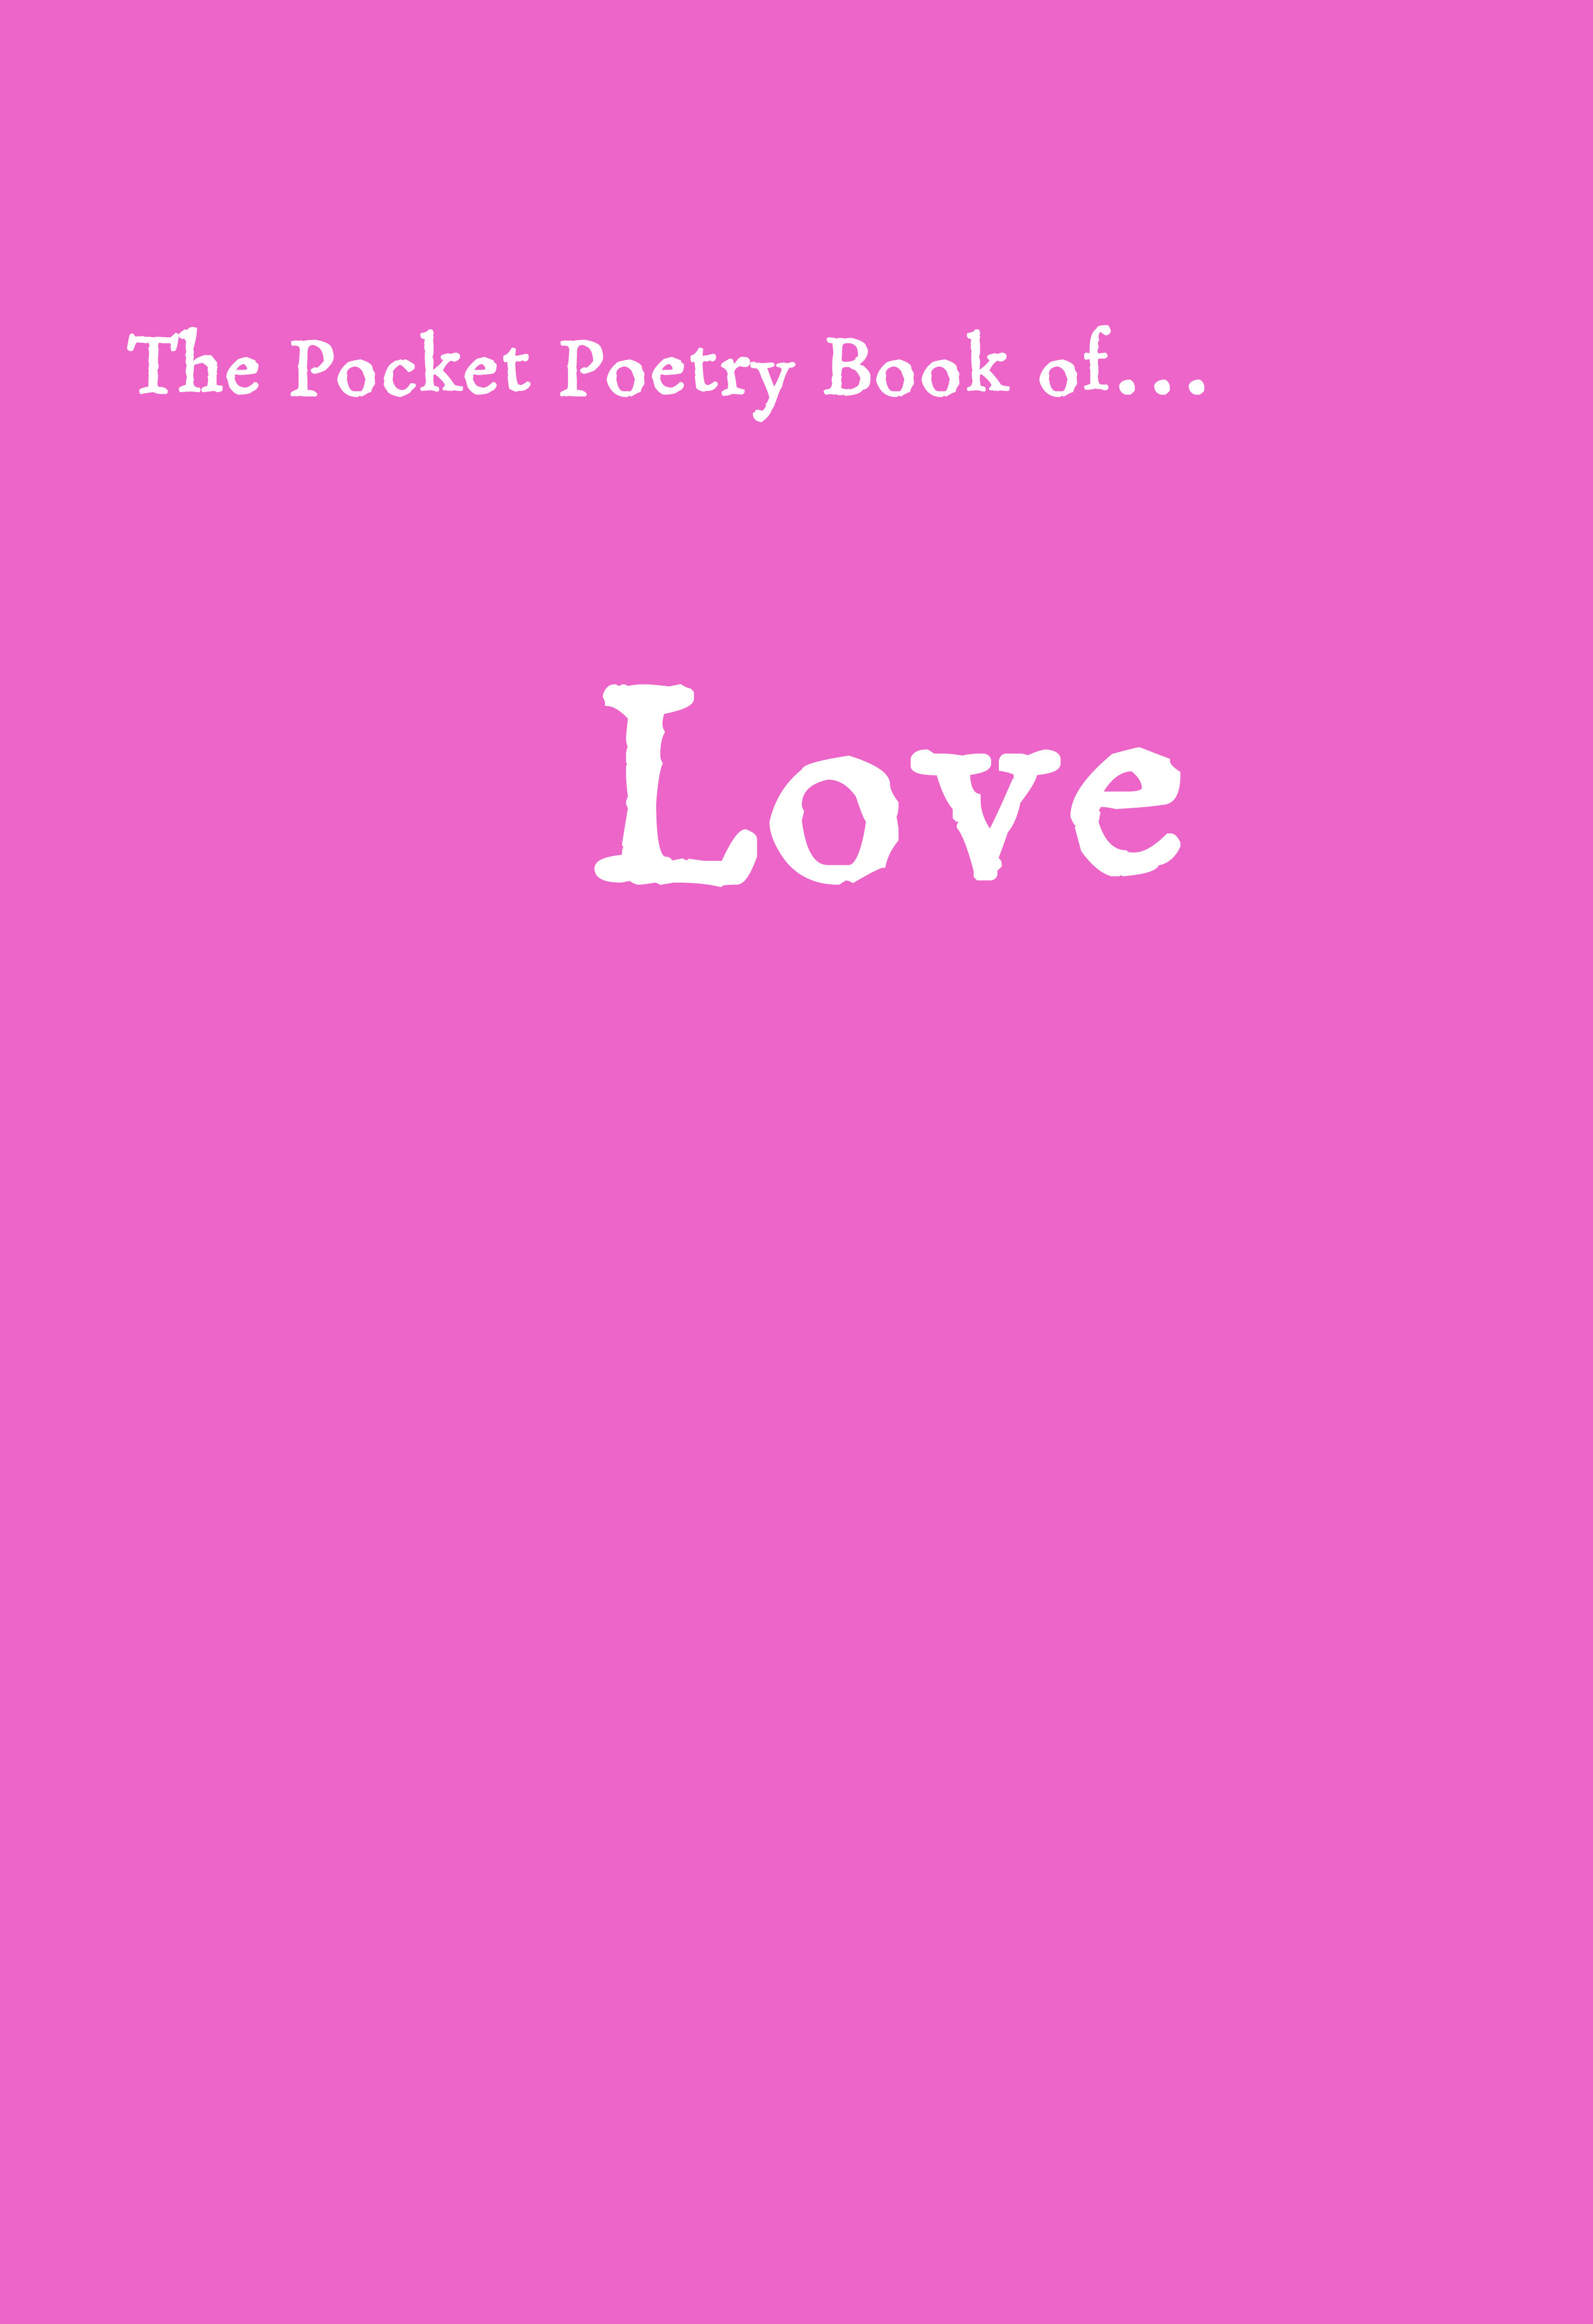 The Pocket Poetry Book of Love